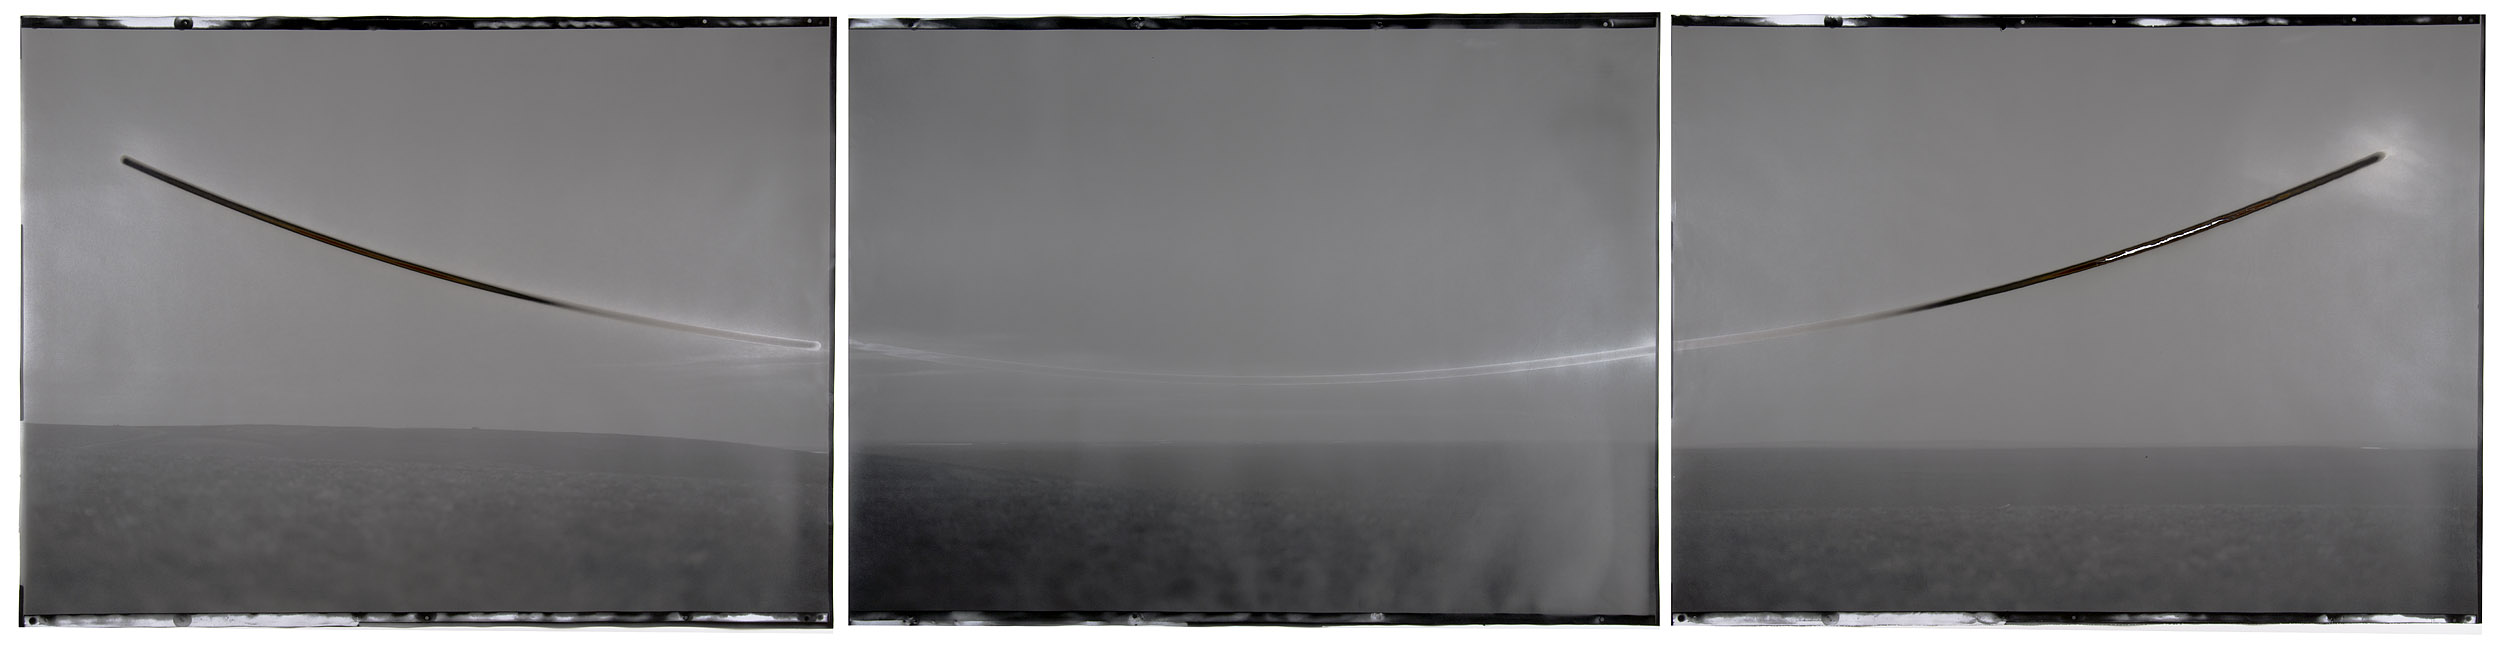 "Sunburned GSP#486 (Sunset/sunrise, North Slope, Alaska ), 2011. Three 30""x40"" unique gelatin silver paper negatives. Private collection"